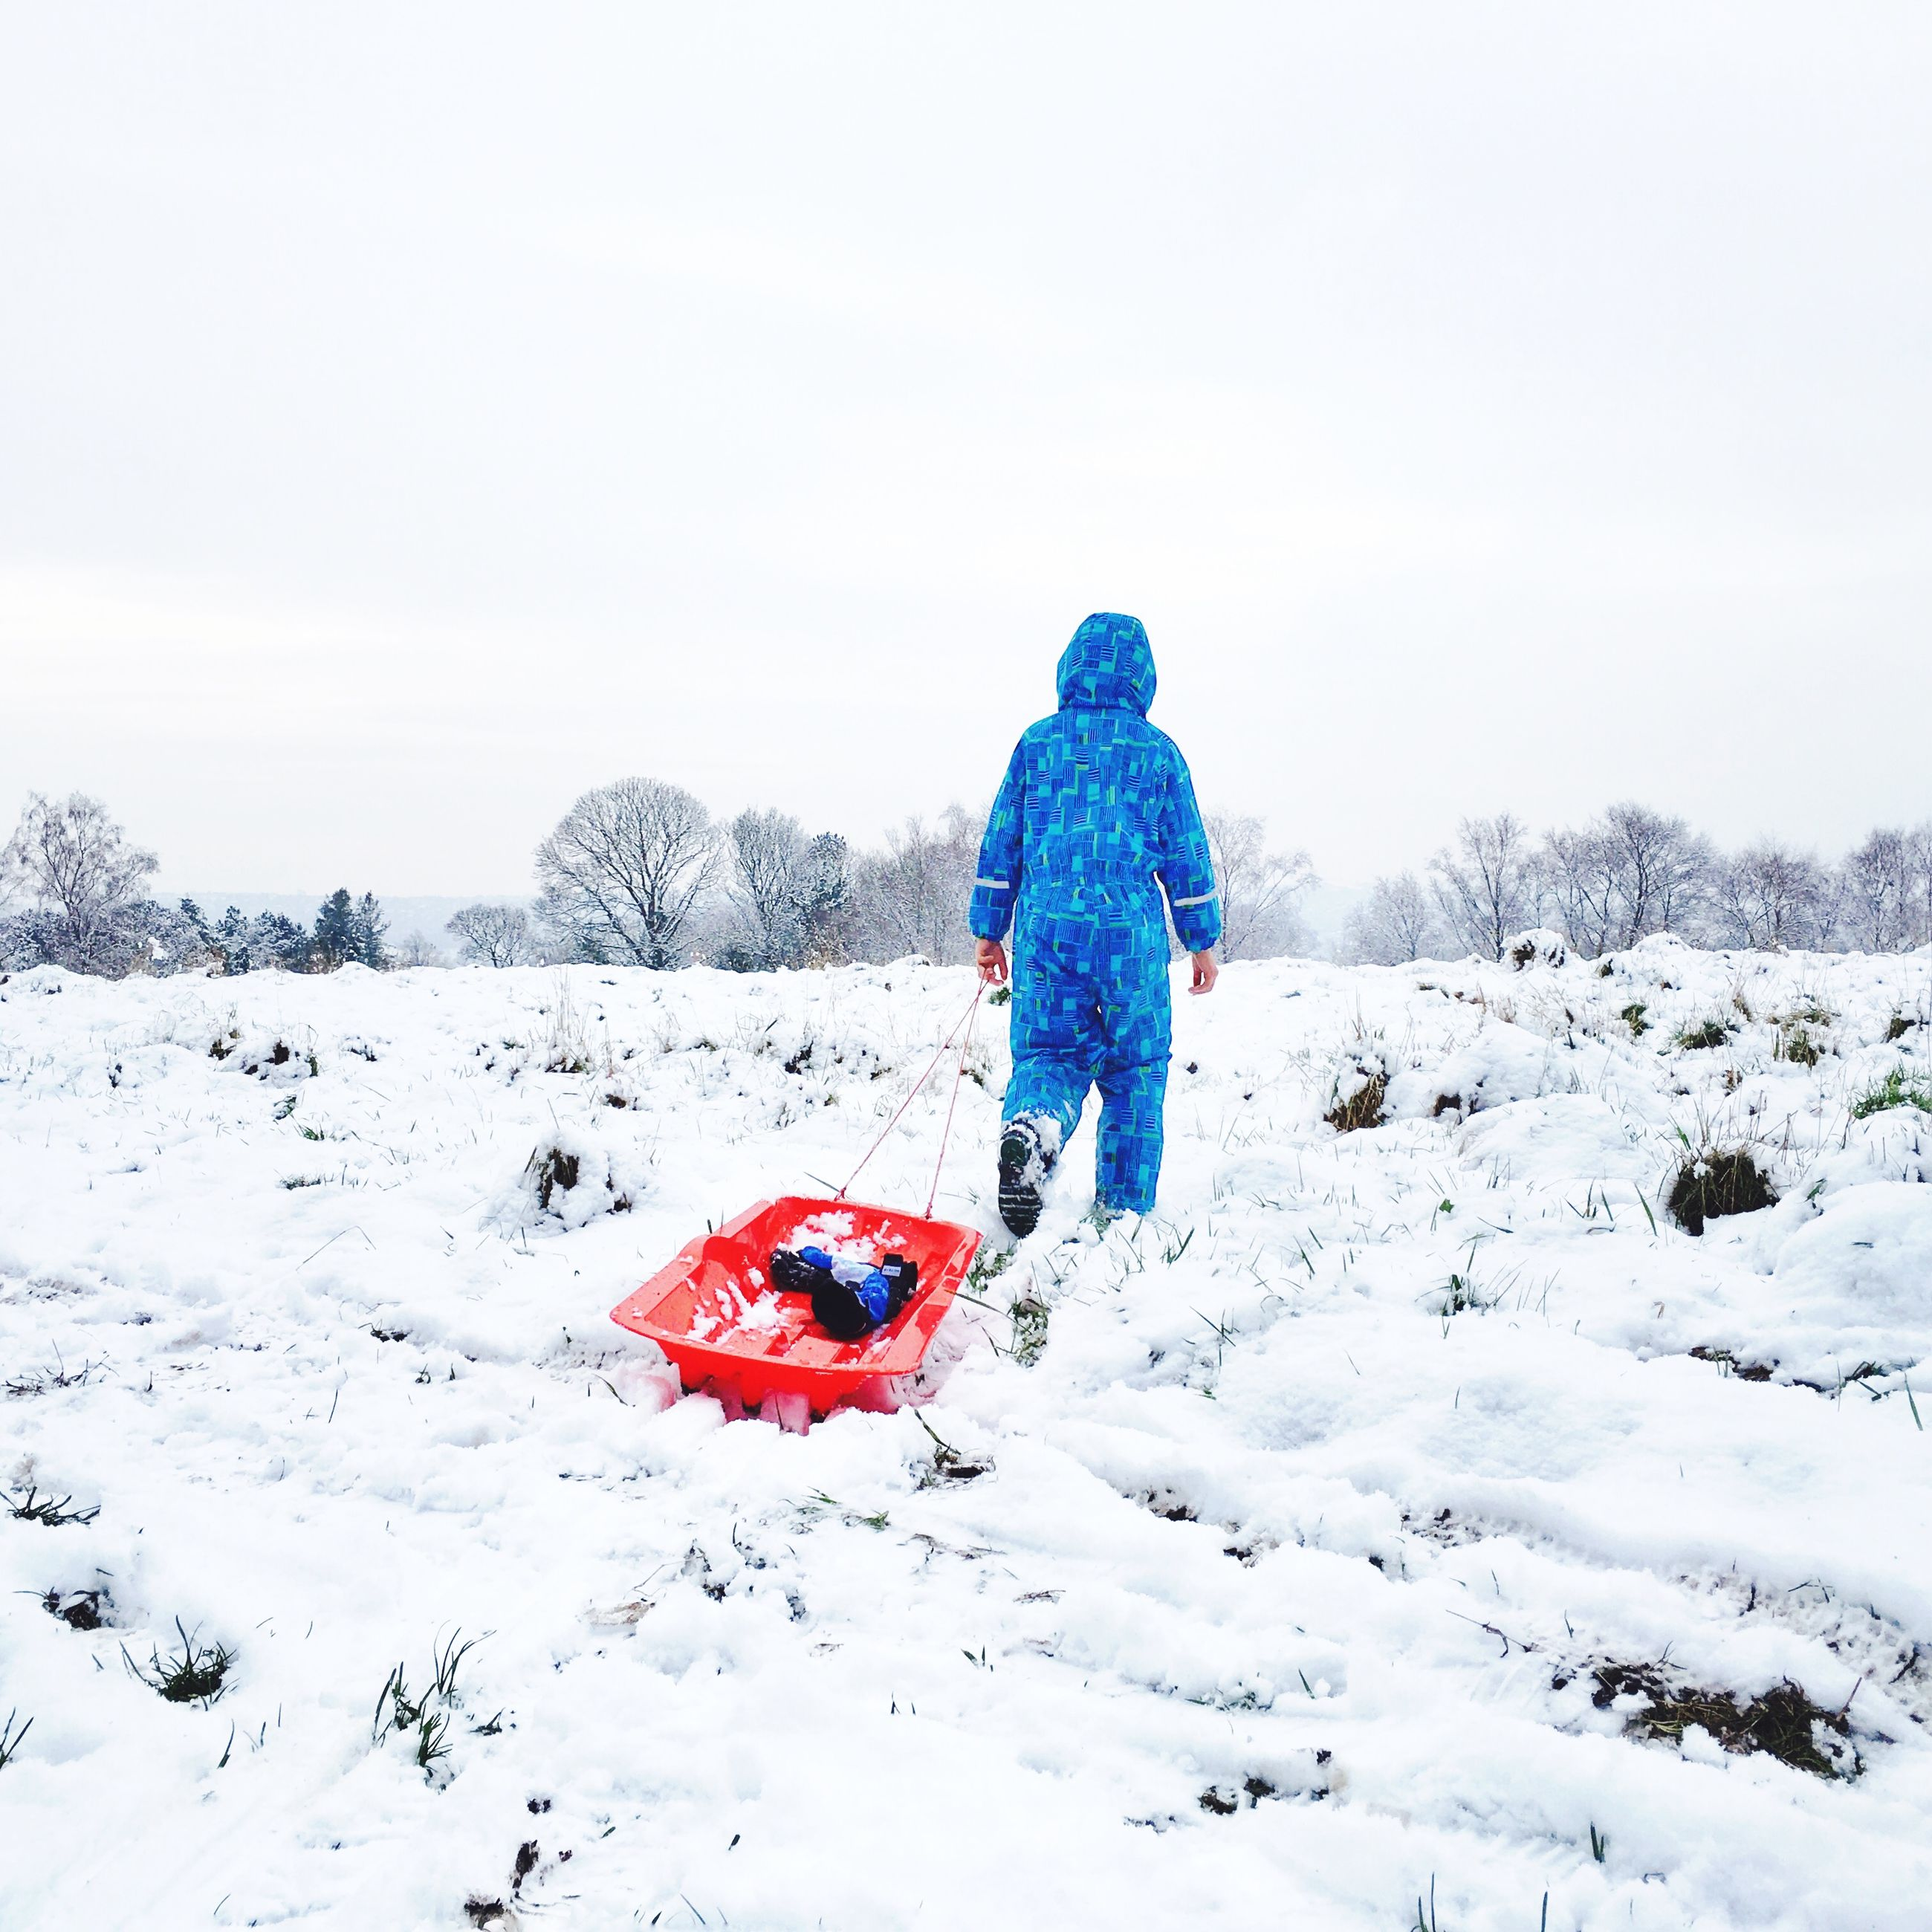 snow, winter, cold temperature, season, weather, lifestyles, leisure activity, warm clothing, full length, covering, landscape, field, frozen, rear view, clear sky, nature, childhood, tranquility